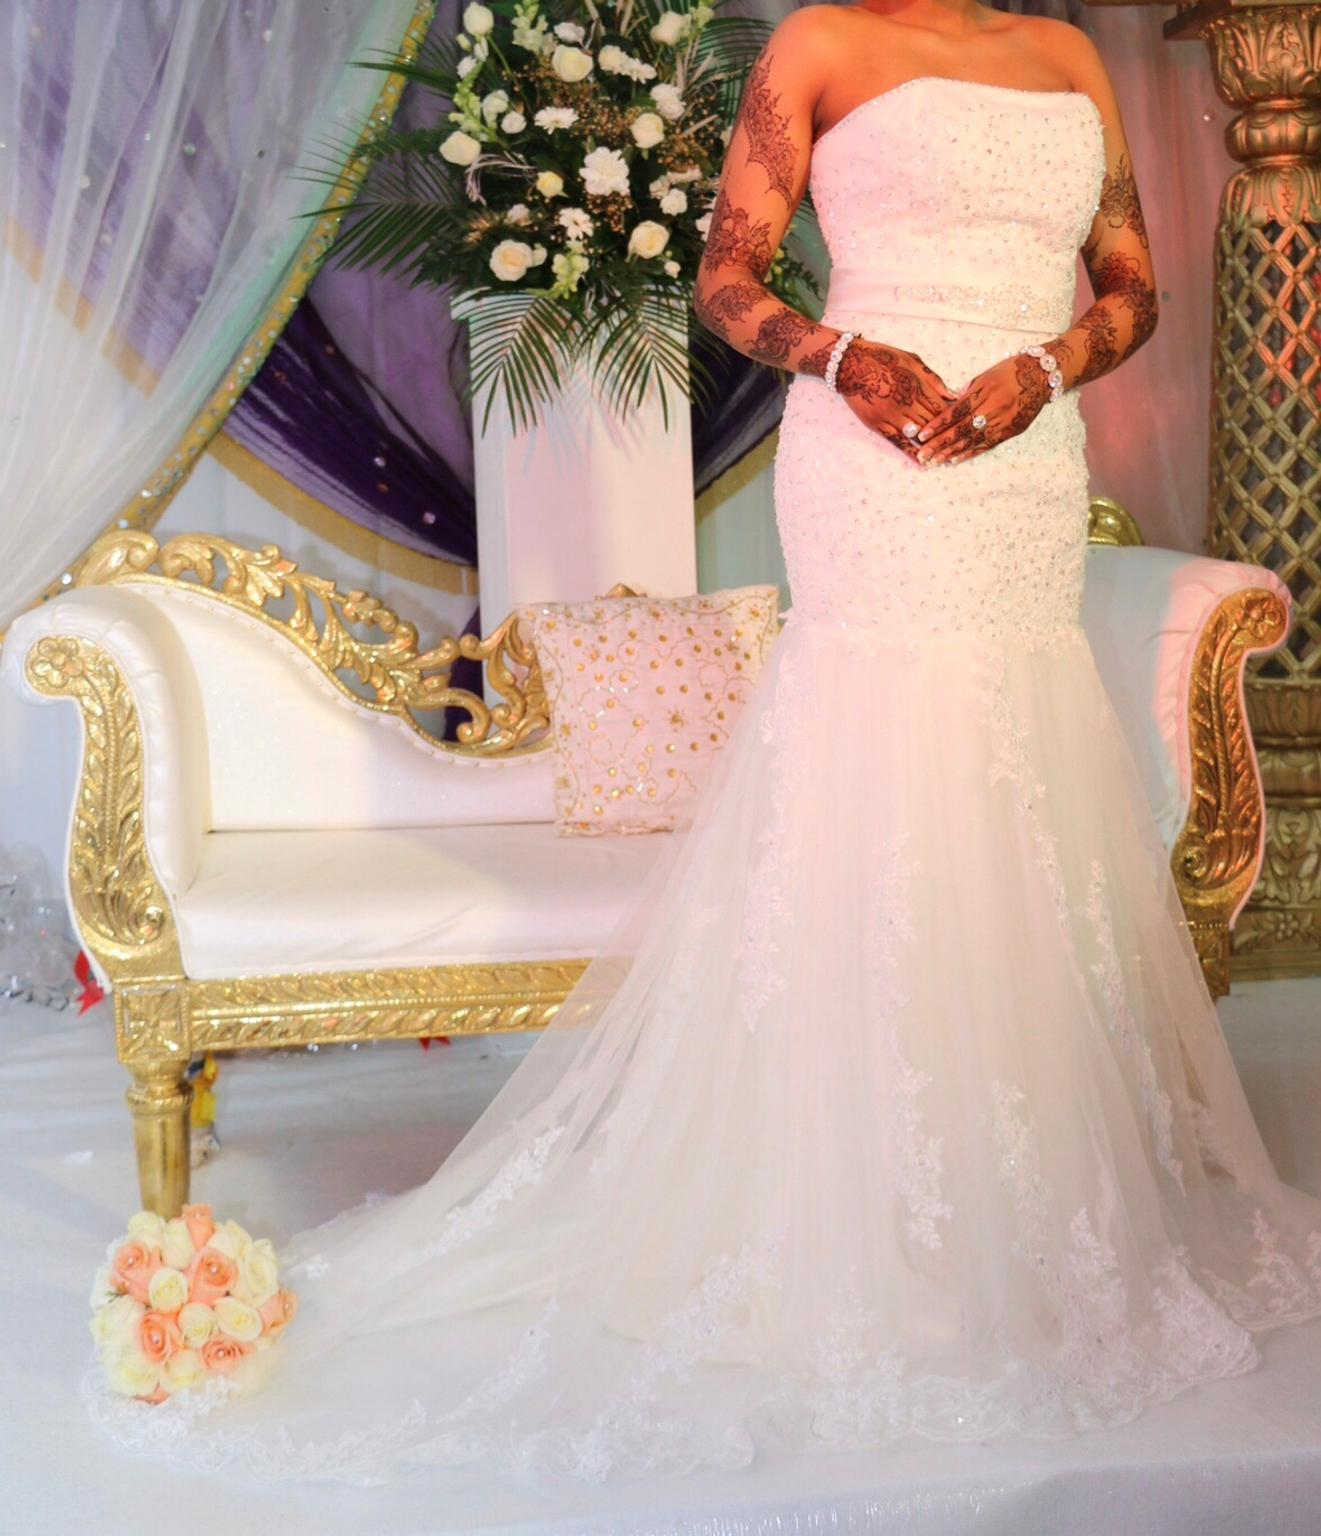 Beautiful Ivory Trumpet Style Wedding Dress In Nw7 Barnet For 400 00 For Sale Shpock